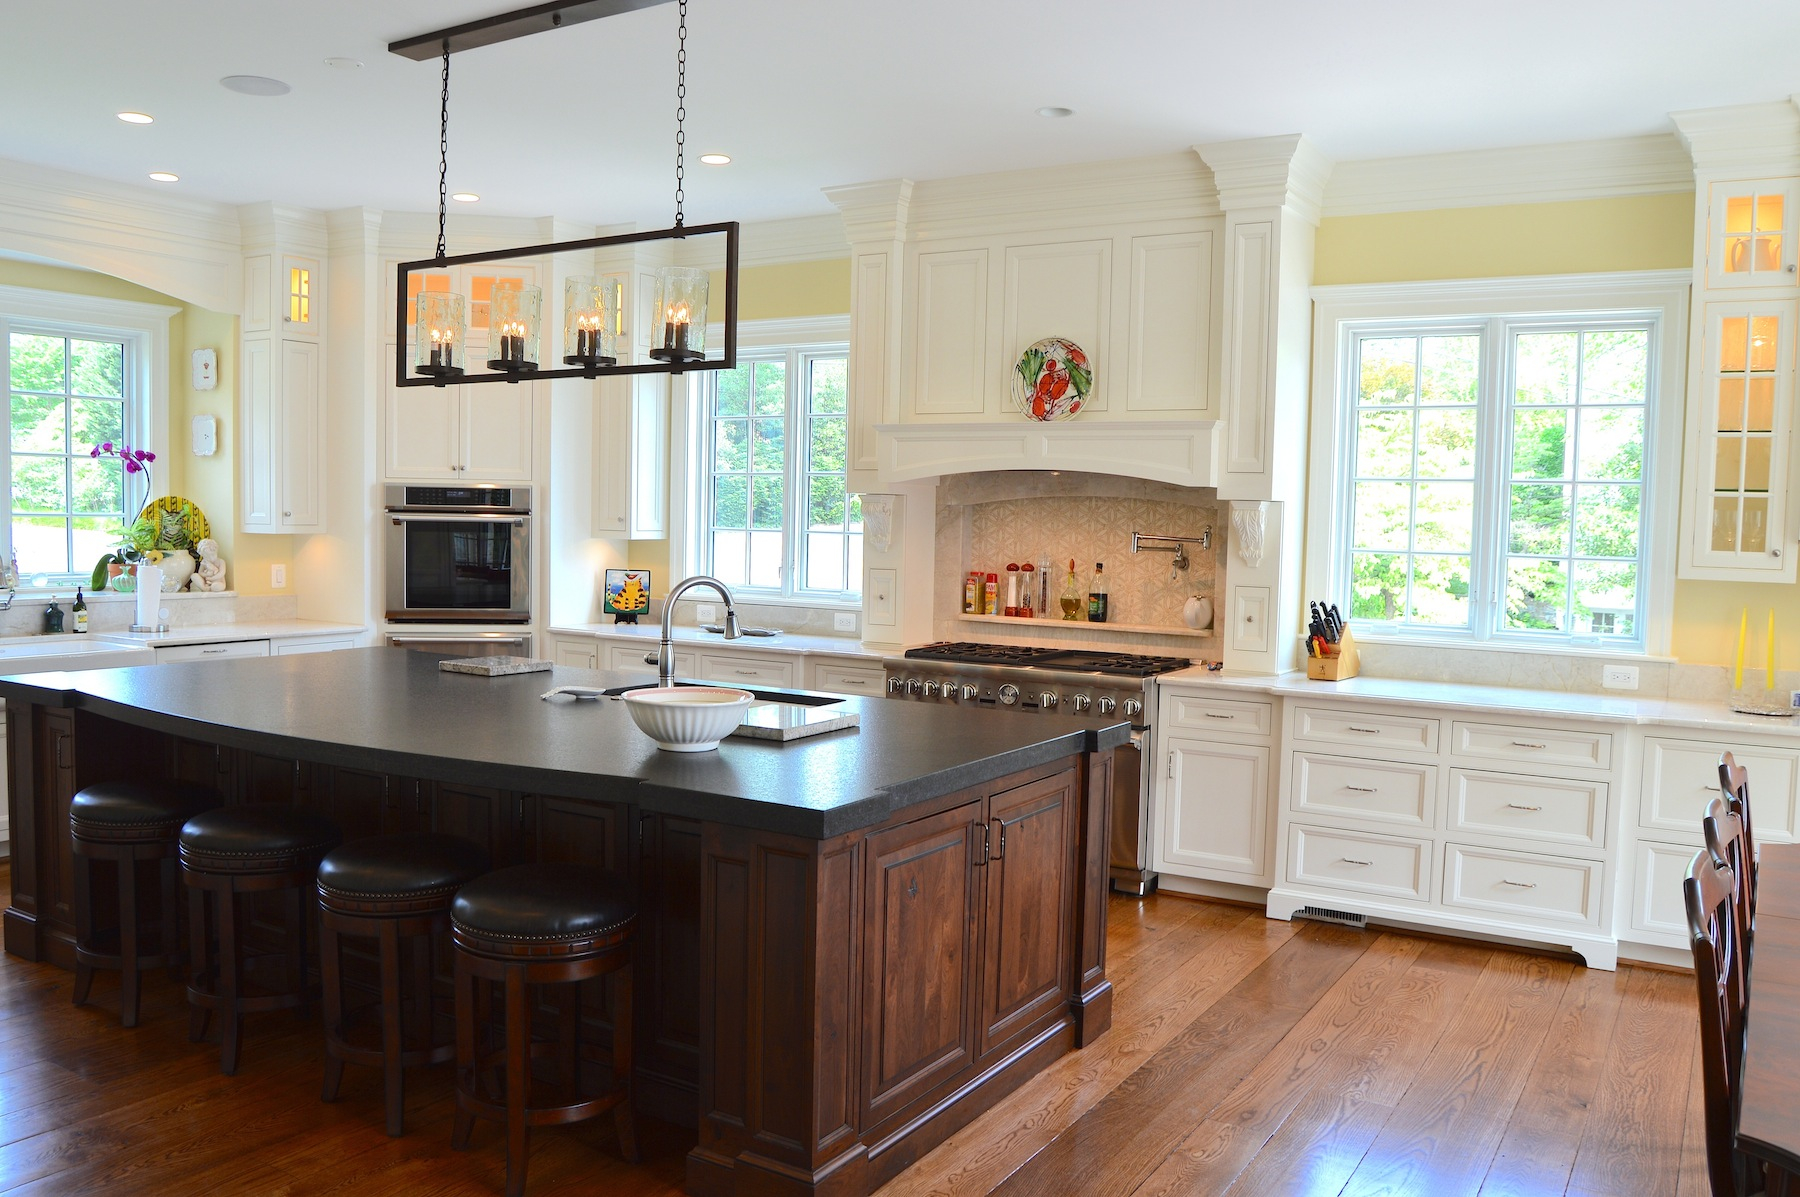 Amazing How To Design A Timeless Kitchen | St.clair Kitchens with Inspirational Timeless Kitchen Design